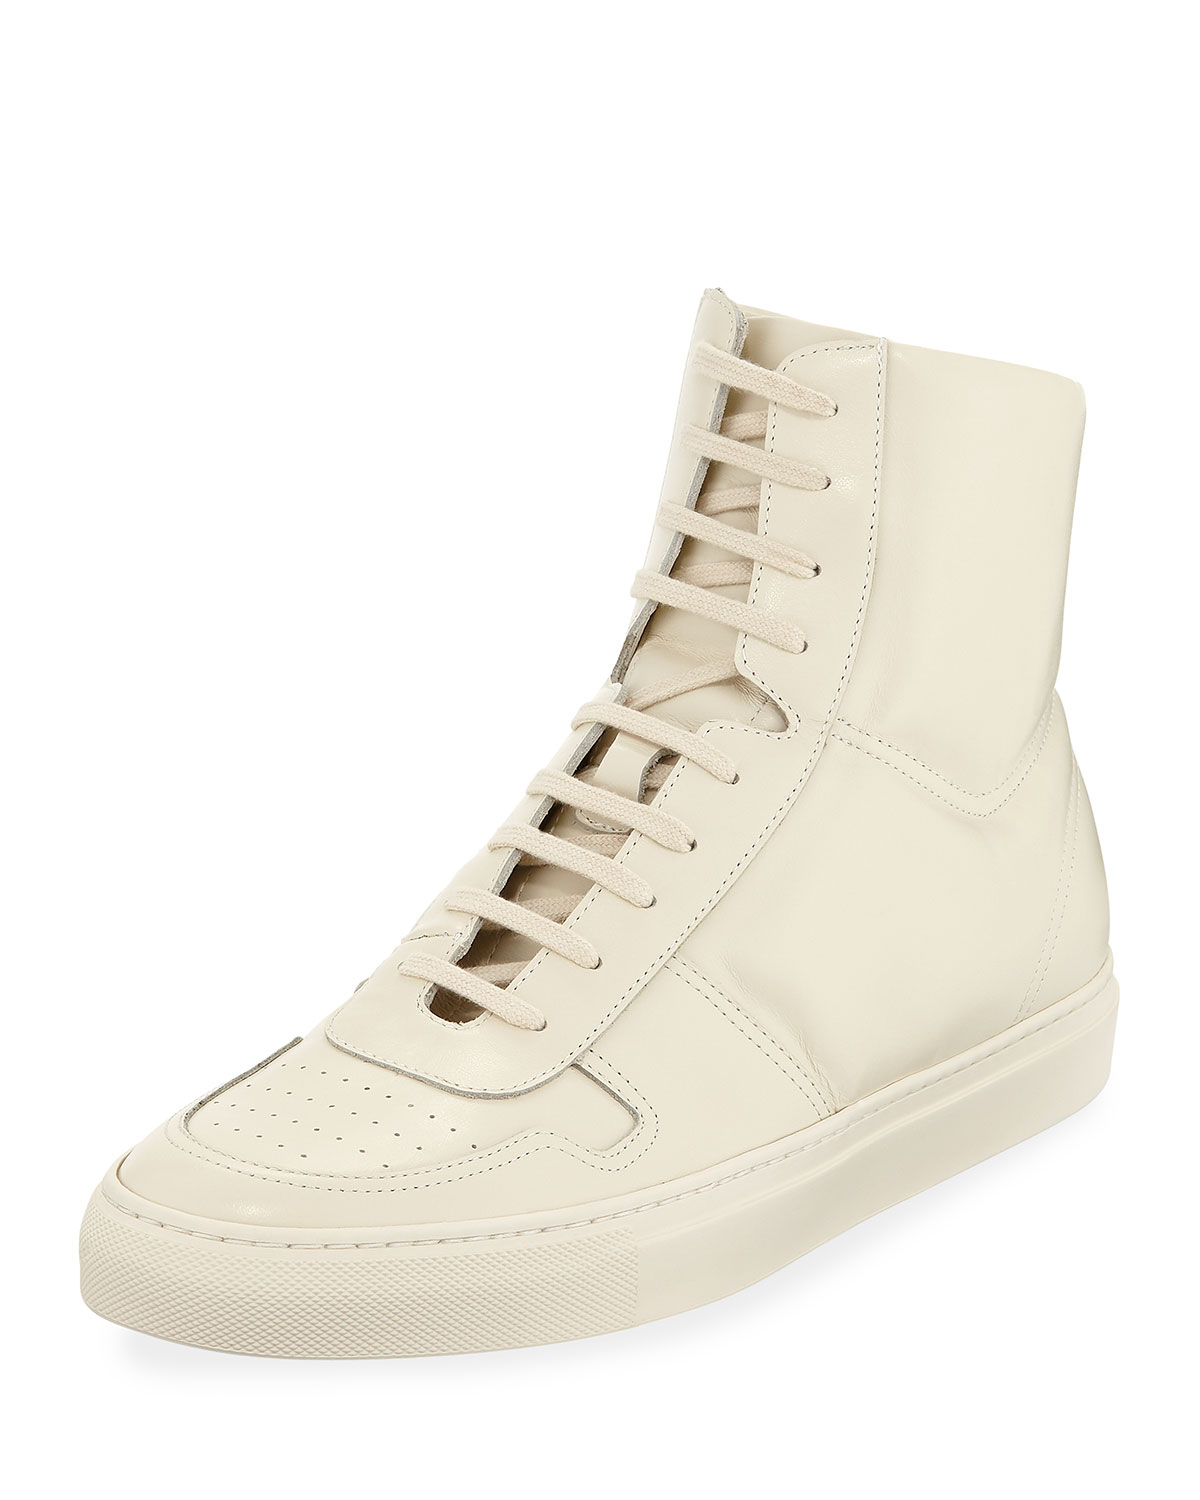 BBall Leather High-Top Sneakers